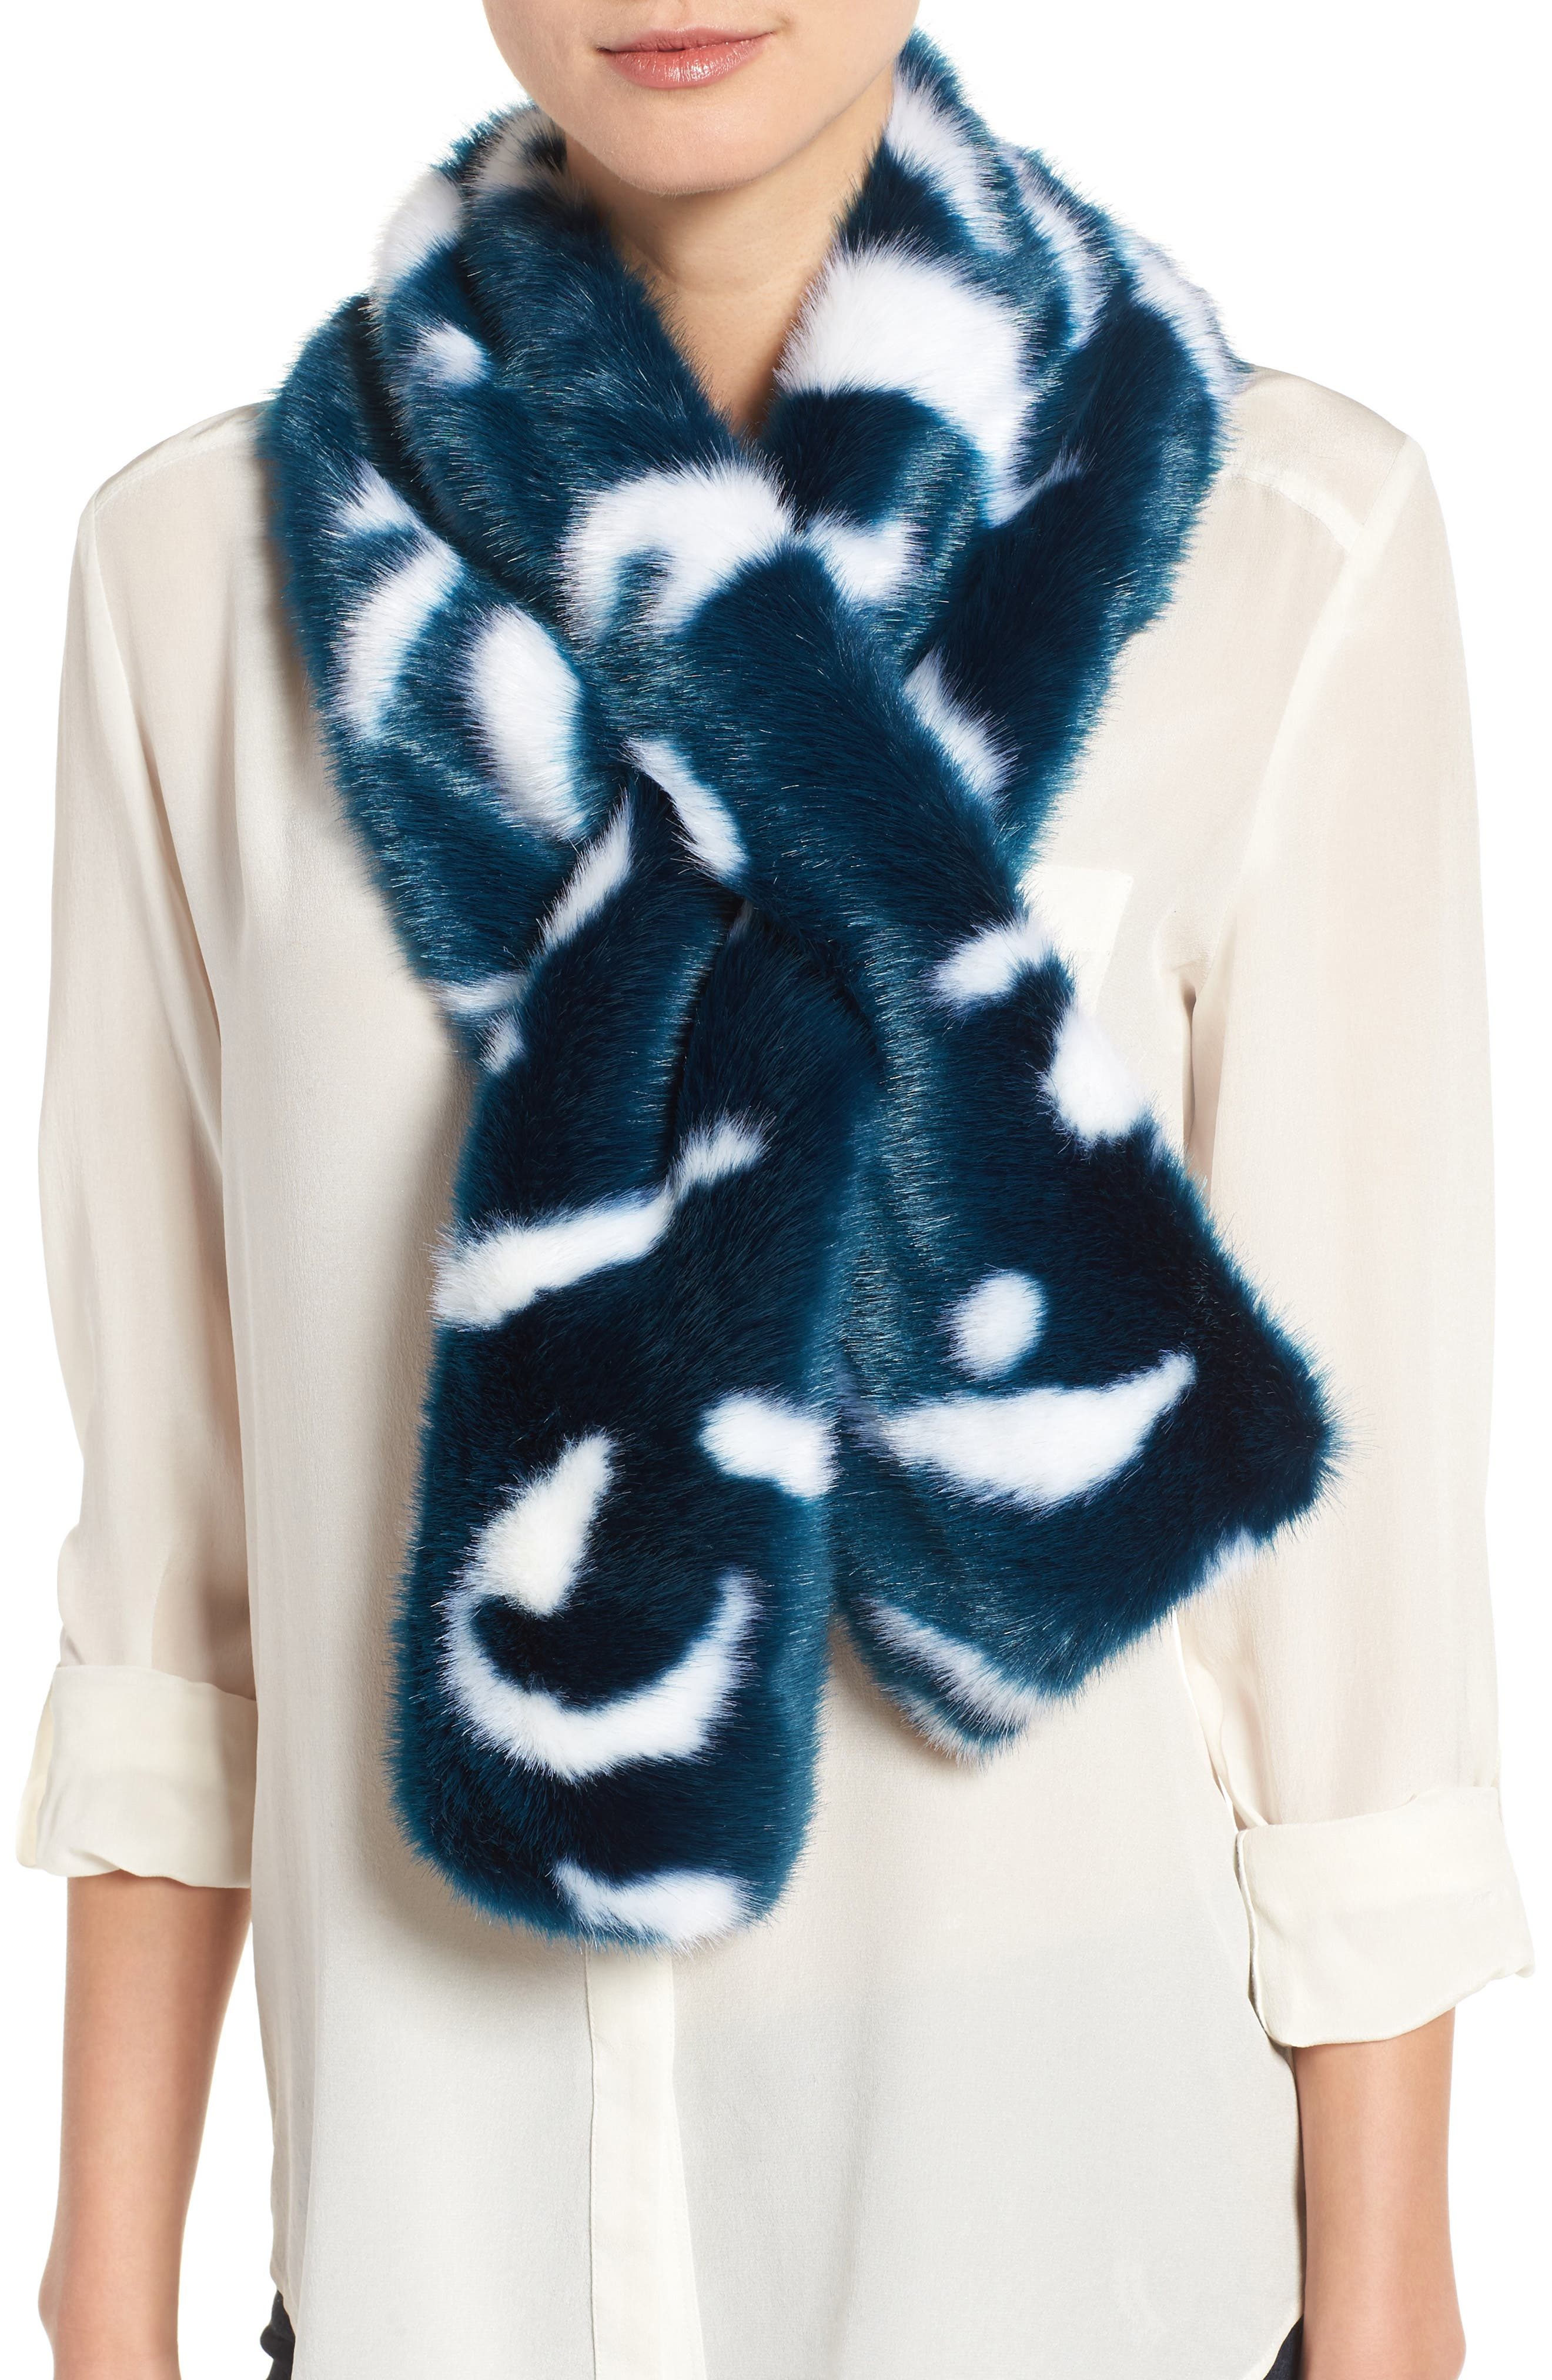 TED BAKER LONDON Colorblock Faux Fur Scarf